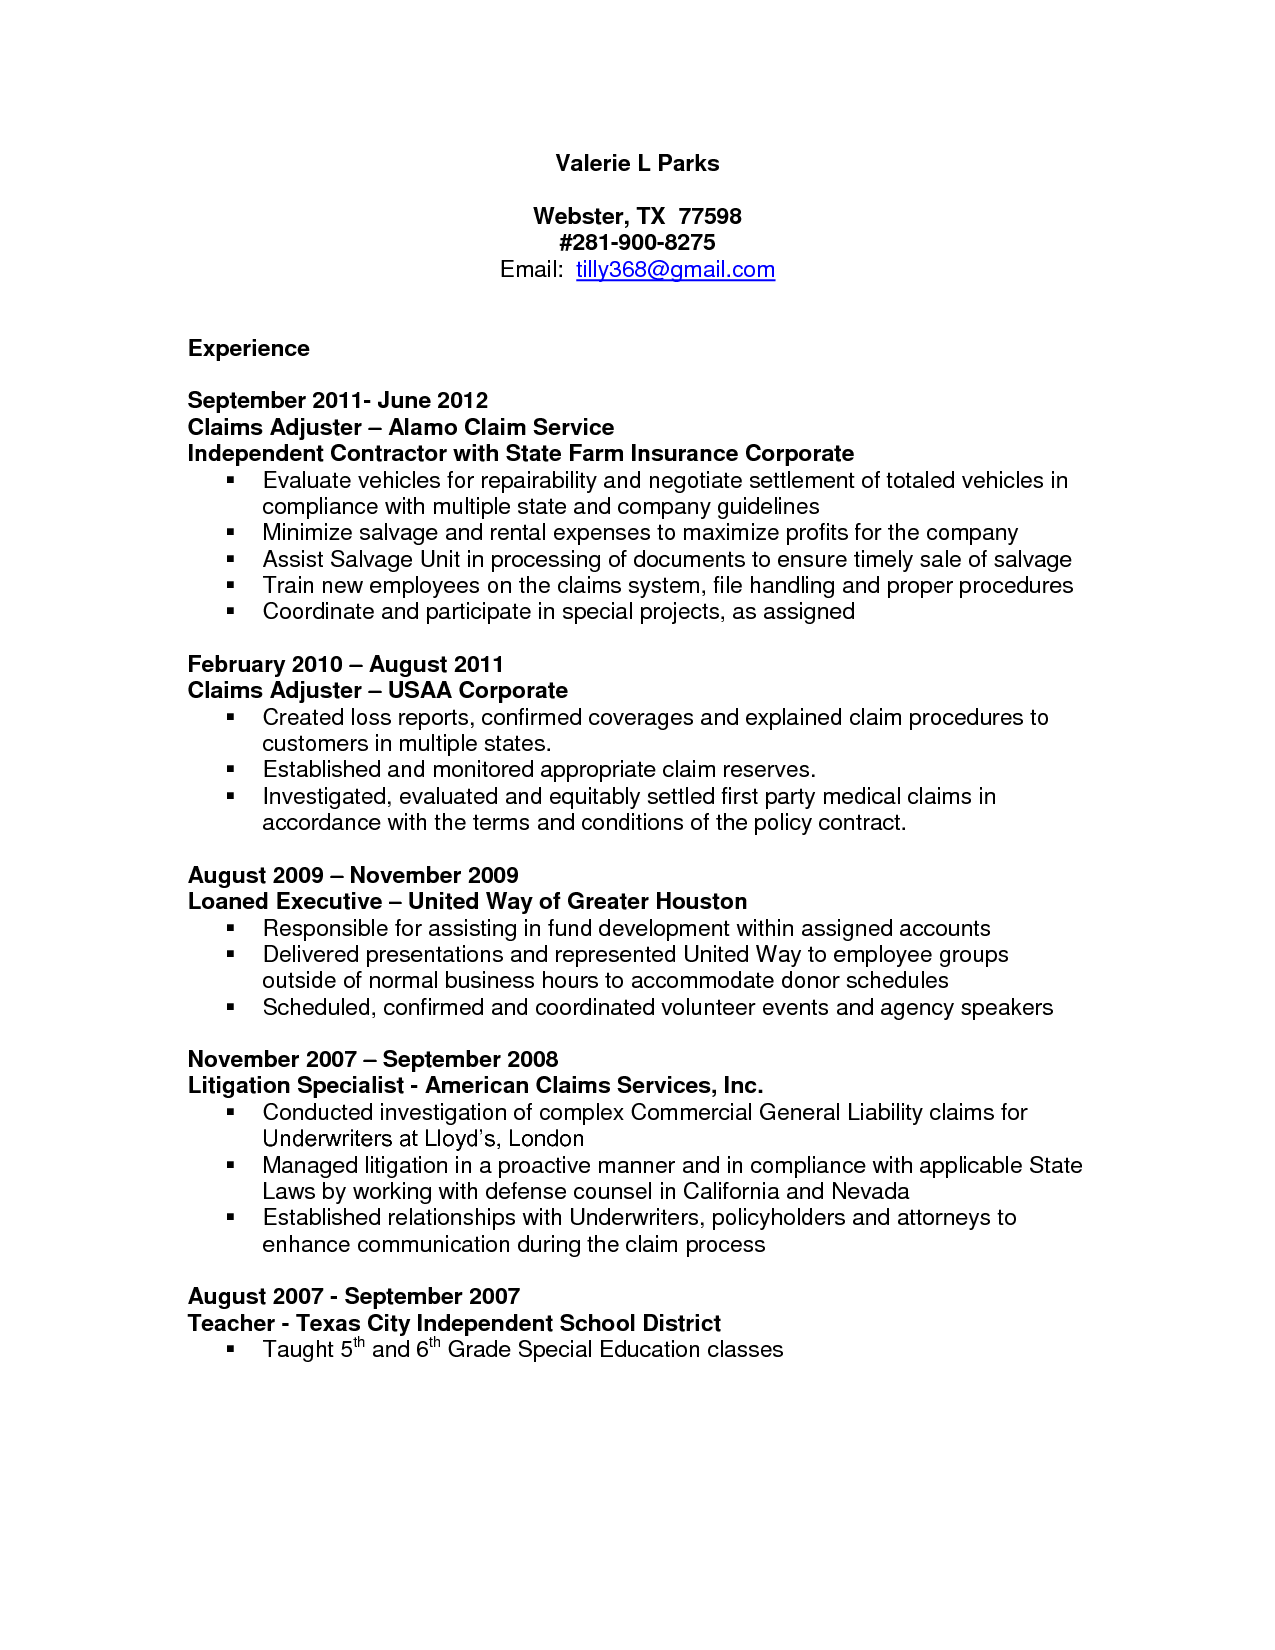 Claims Adjuster Resume Sample Resume, Sample resume